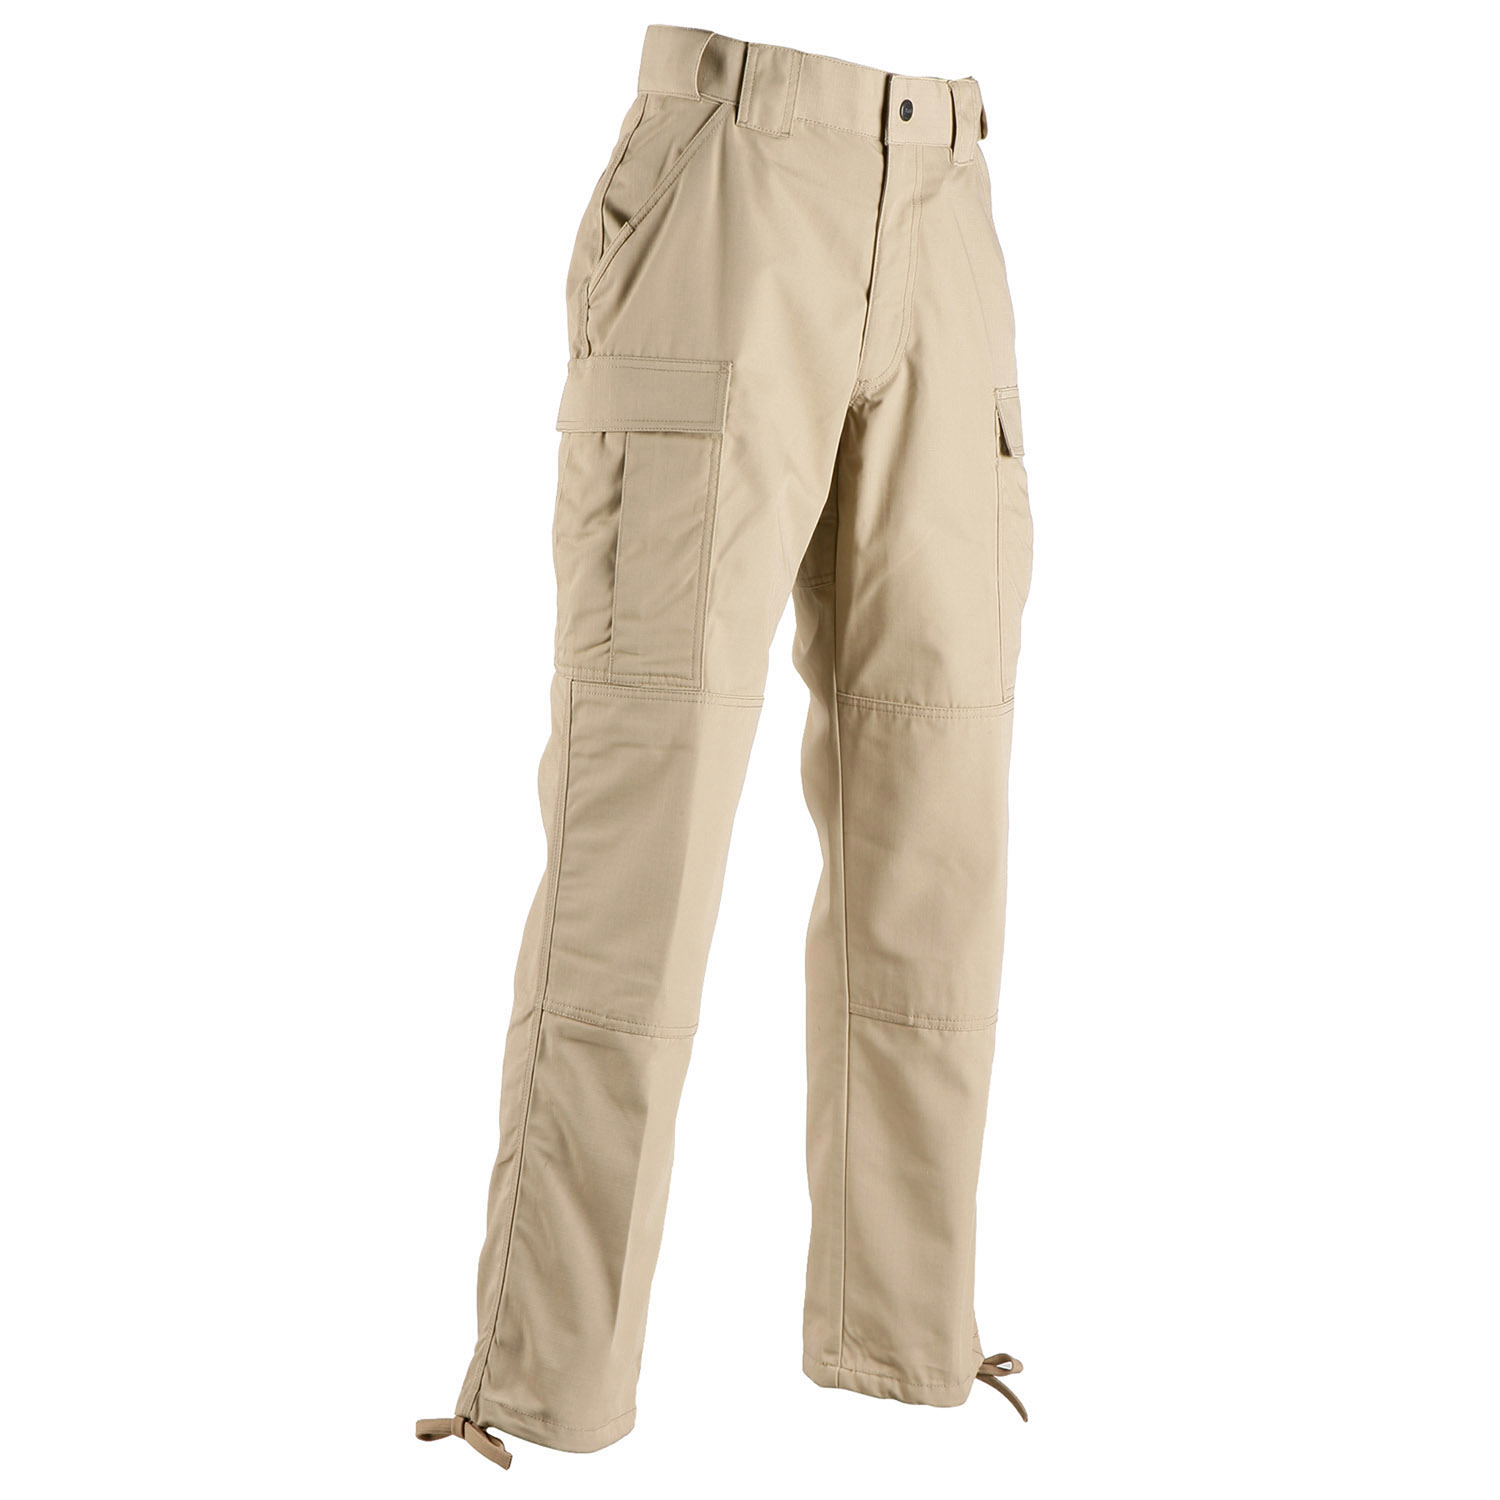 5.11 Tactical Men's Ripstop TDU Pants